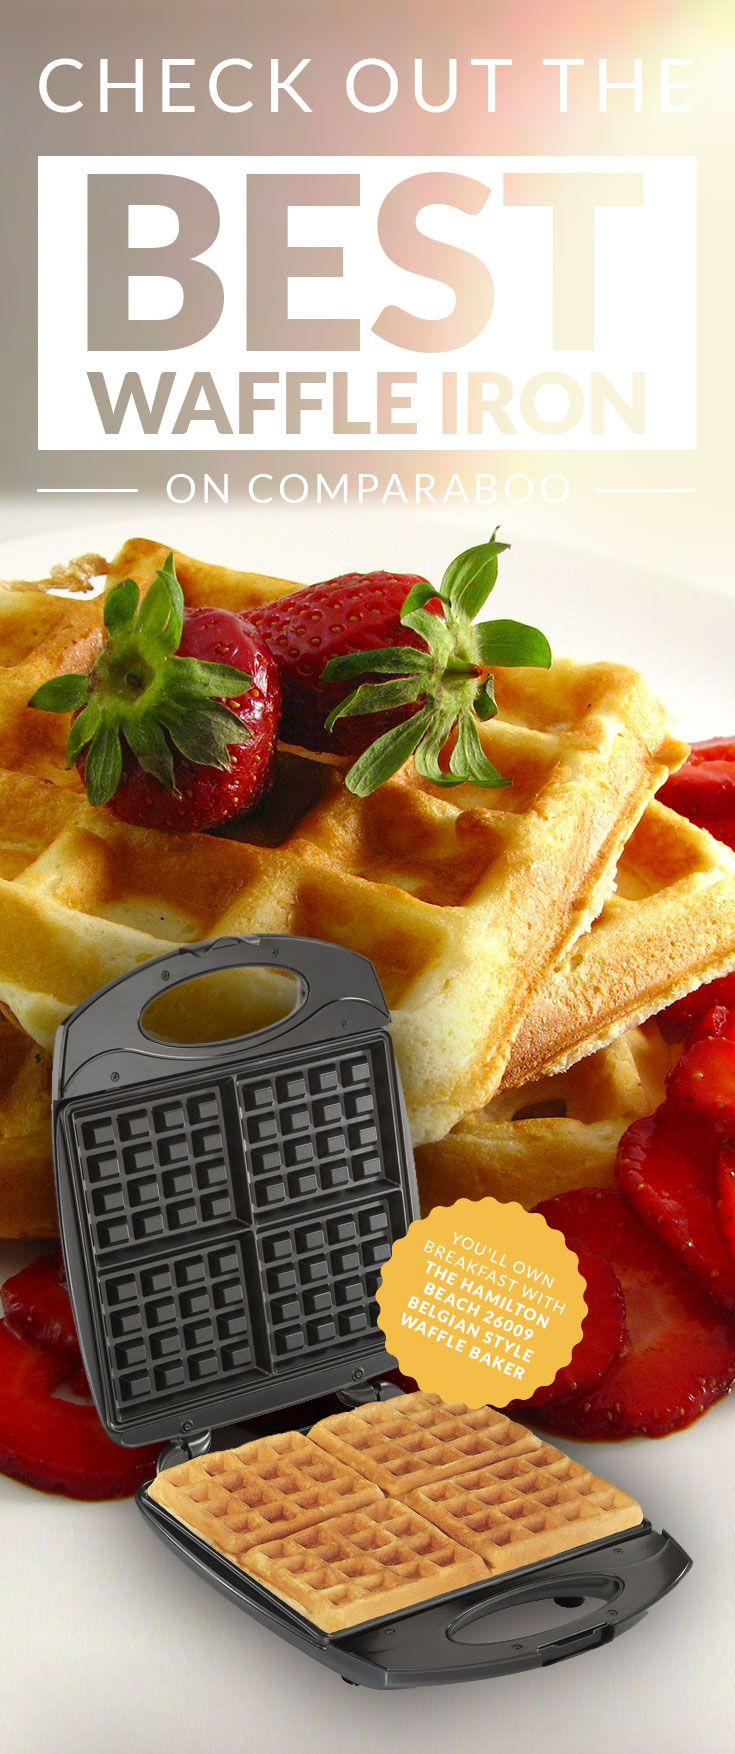 Comparaboo scanned over 100,000 reviews to find the 10 top rated waffle irons. The top two are neck-in-neck for the #1 position, and we're not complaining! Check out the top-rated waffle irons on www.comparaboo.com | @comparaboo